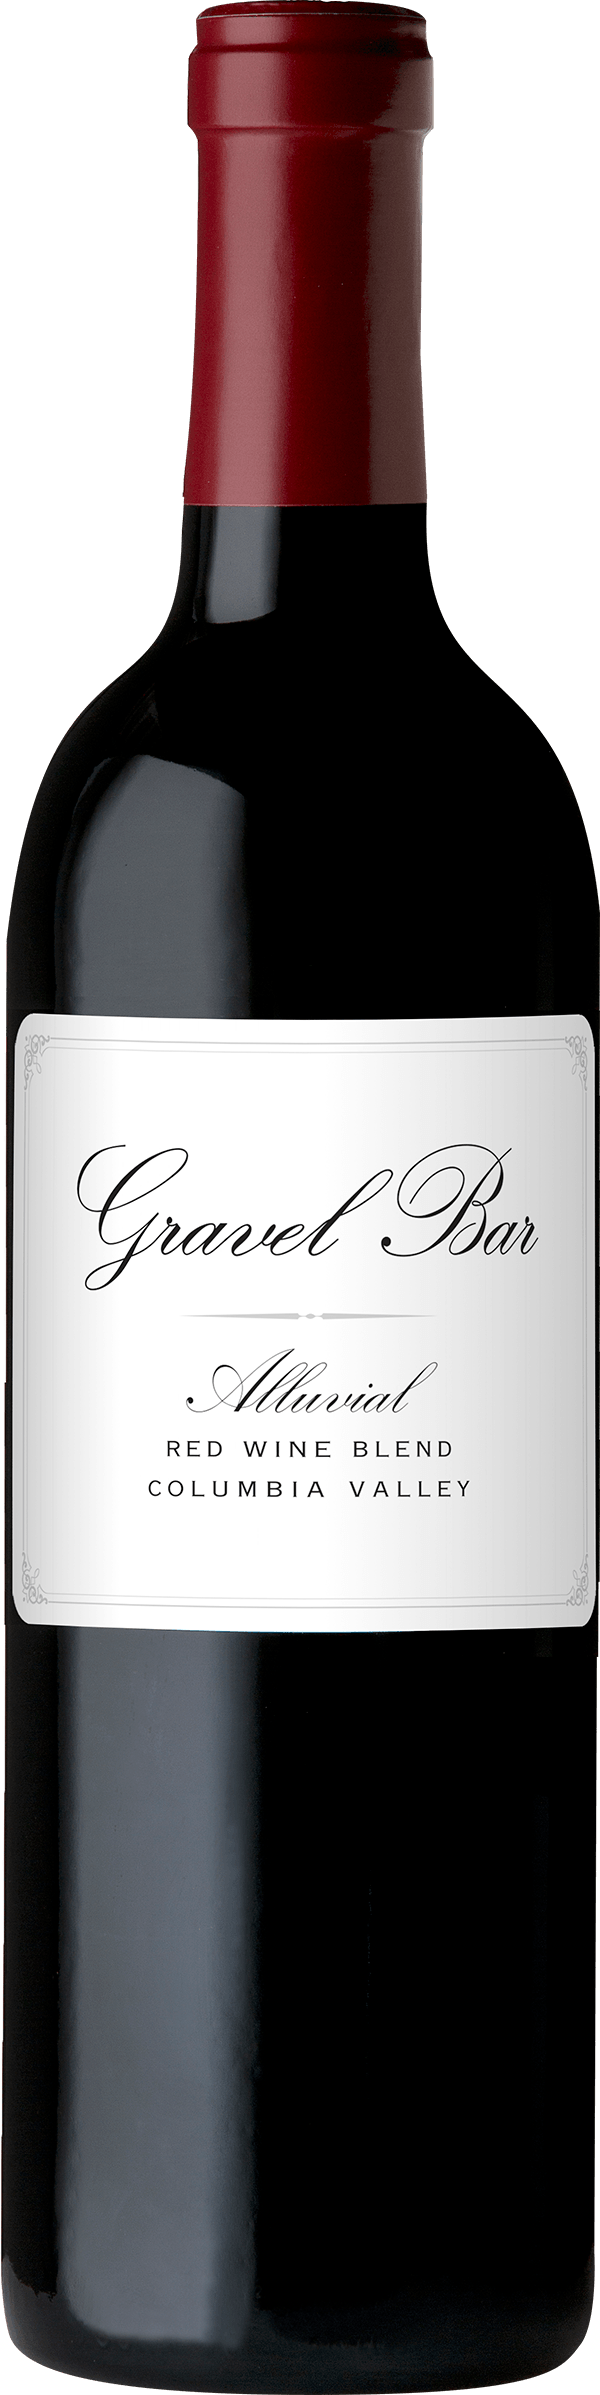 A bottle of the Alluvial Red Blend